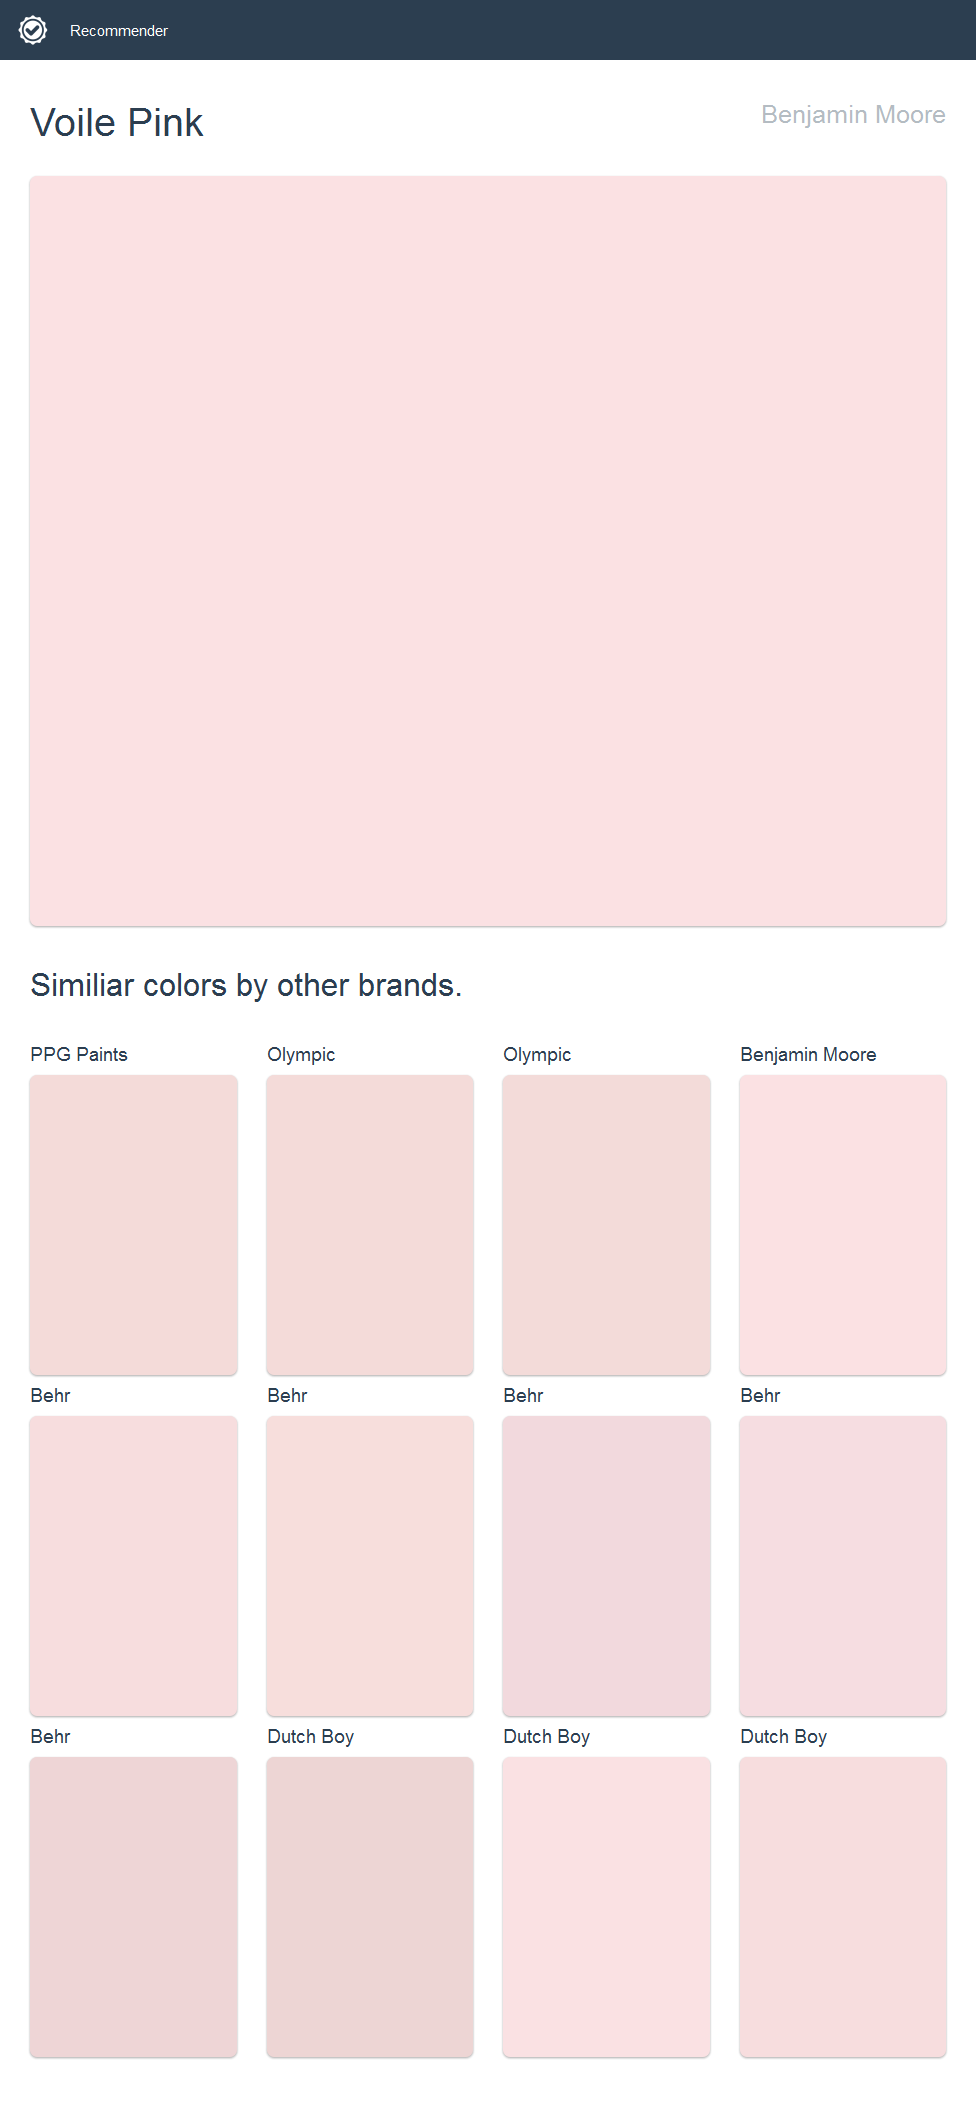 Voile Pink, Benjamin Moore. Click the image to see similiar colors by other brands.